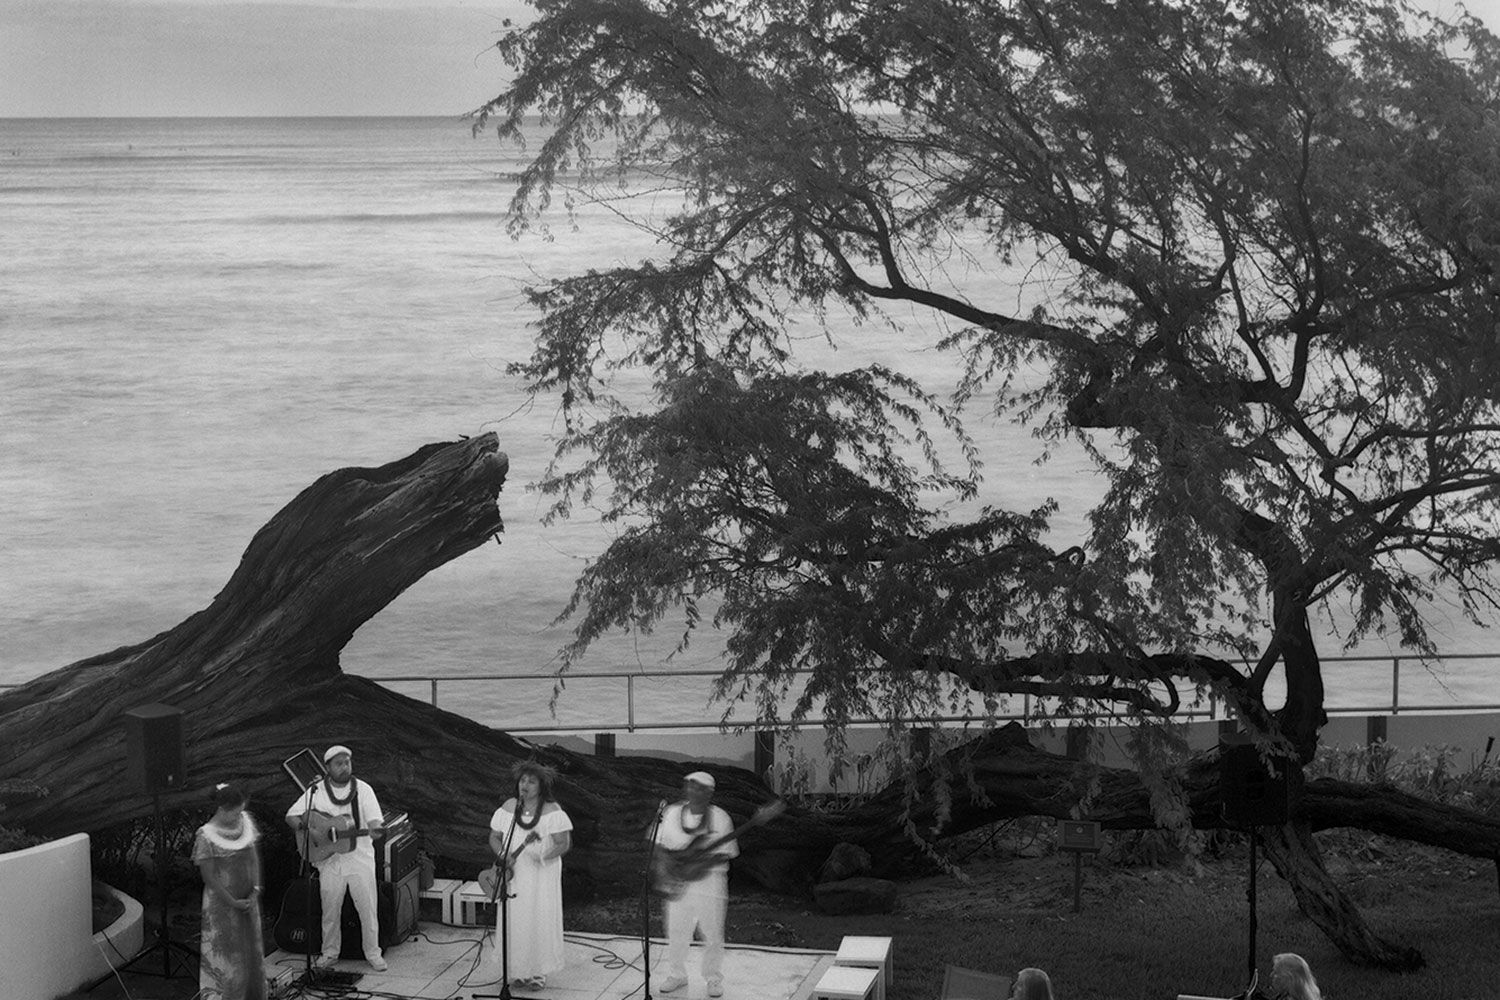 Black and white image of kiawe tree and a band dressed in white on stage